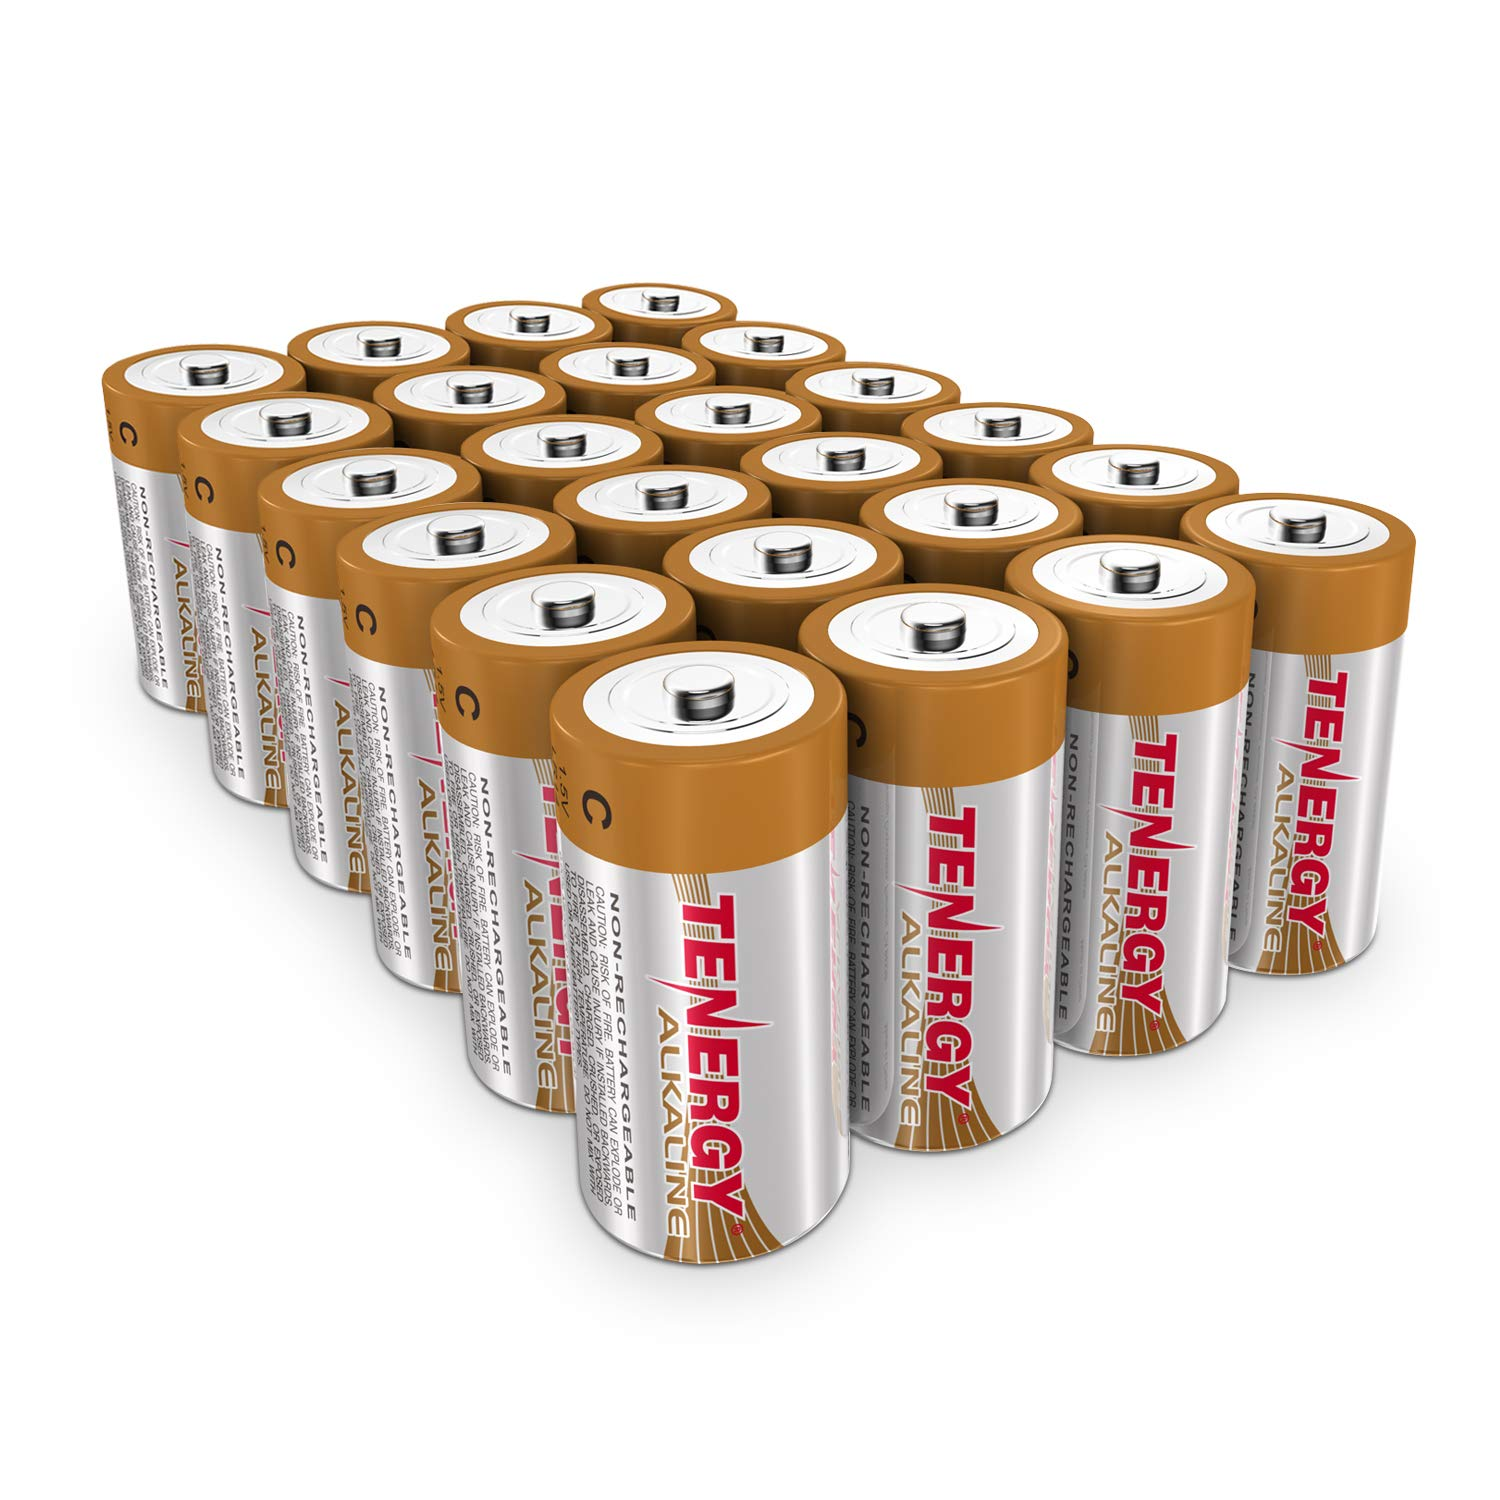 Tenergy 1.5V C Alkaline LR14 Battery, High Performance C Non-Rechargeable Batteries for Clocks, Remotes, Toys & Electronic Devices, Replacement C Cell Batteries, 24-Pack by Tenergy